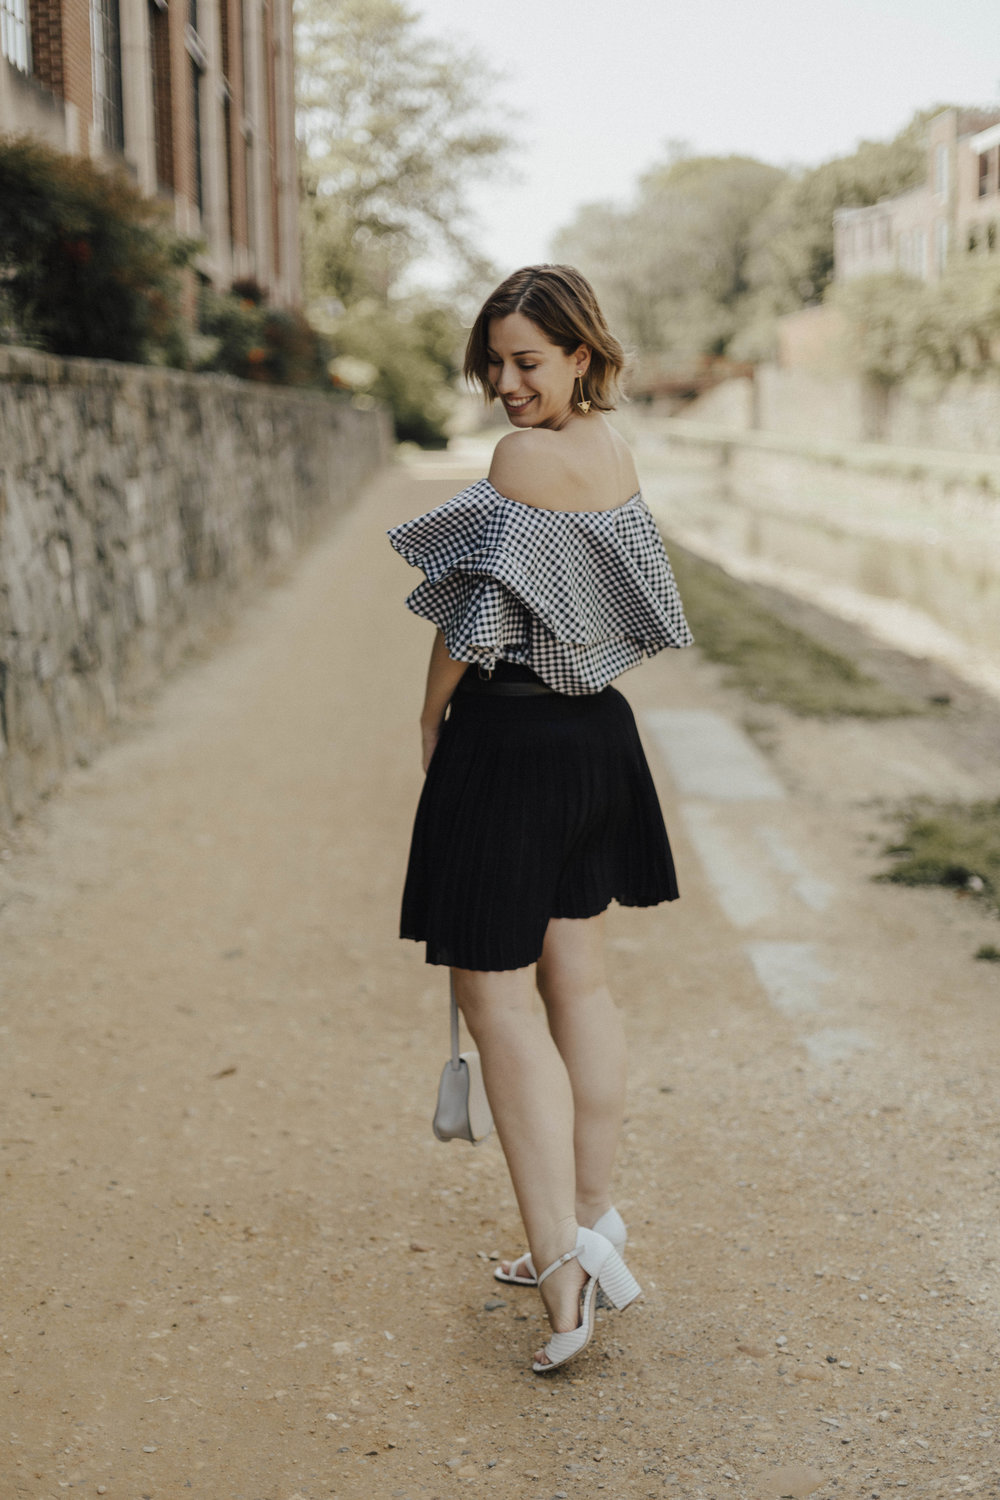 Gingham outfit off-the-shoulder top